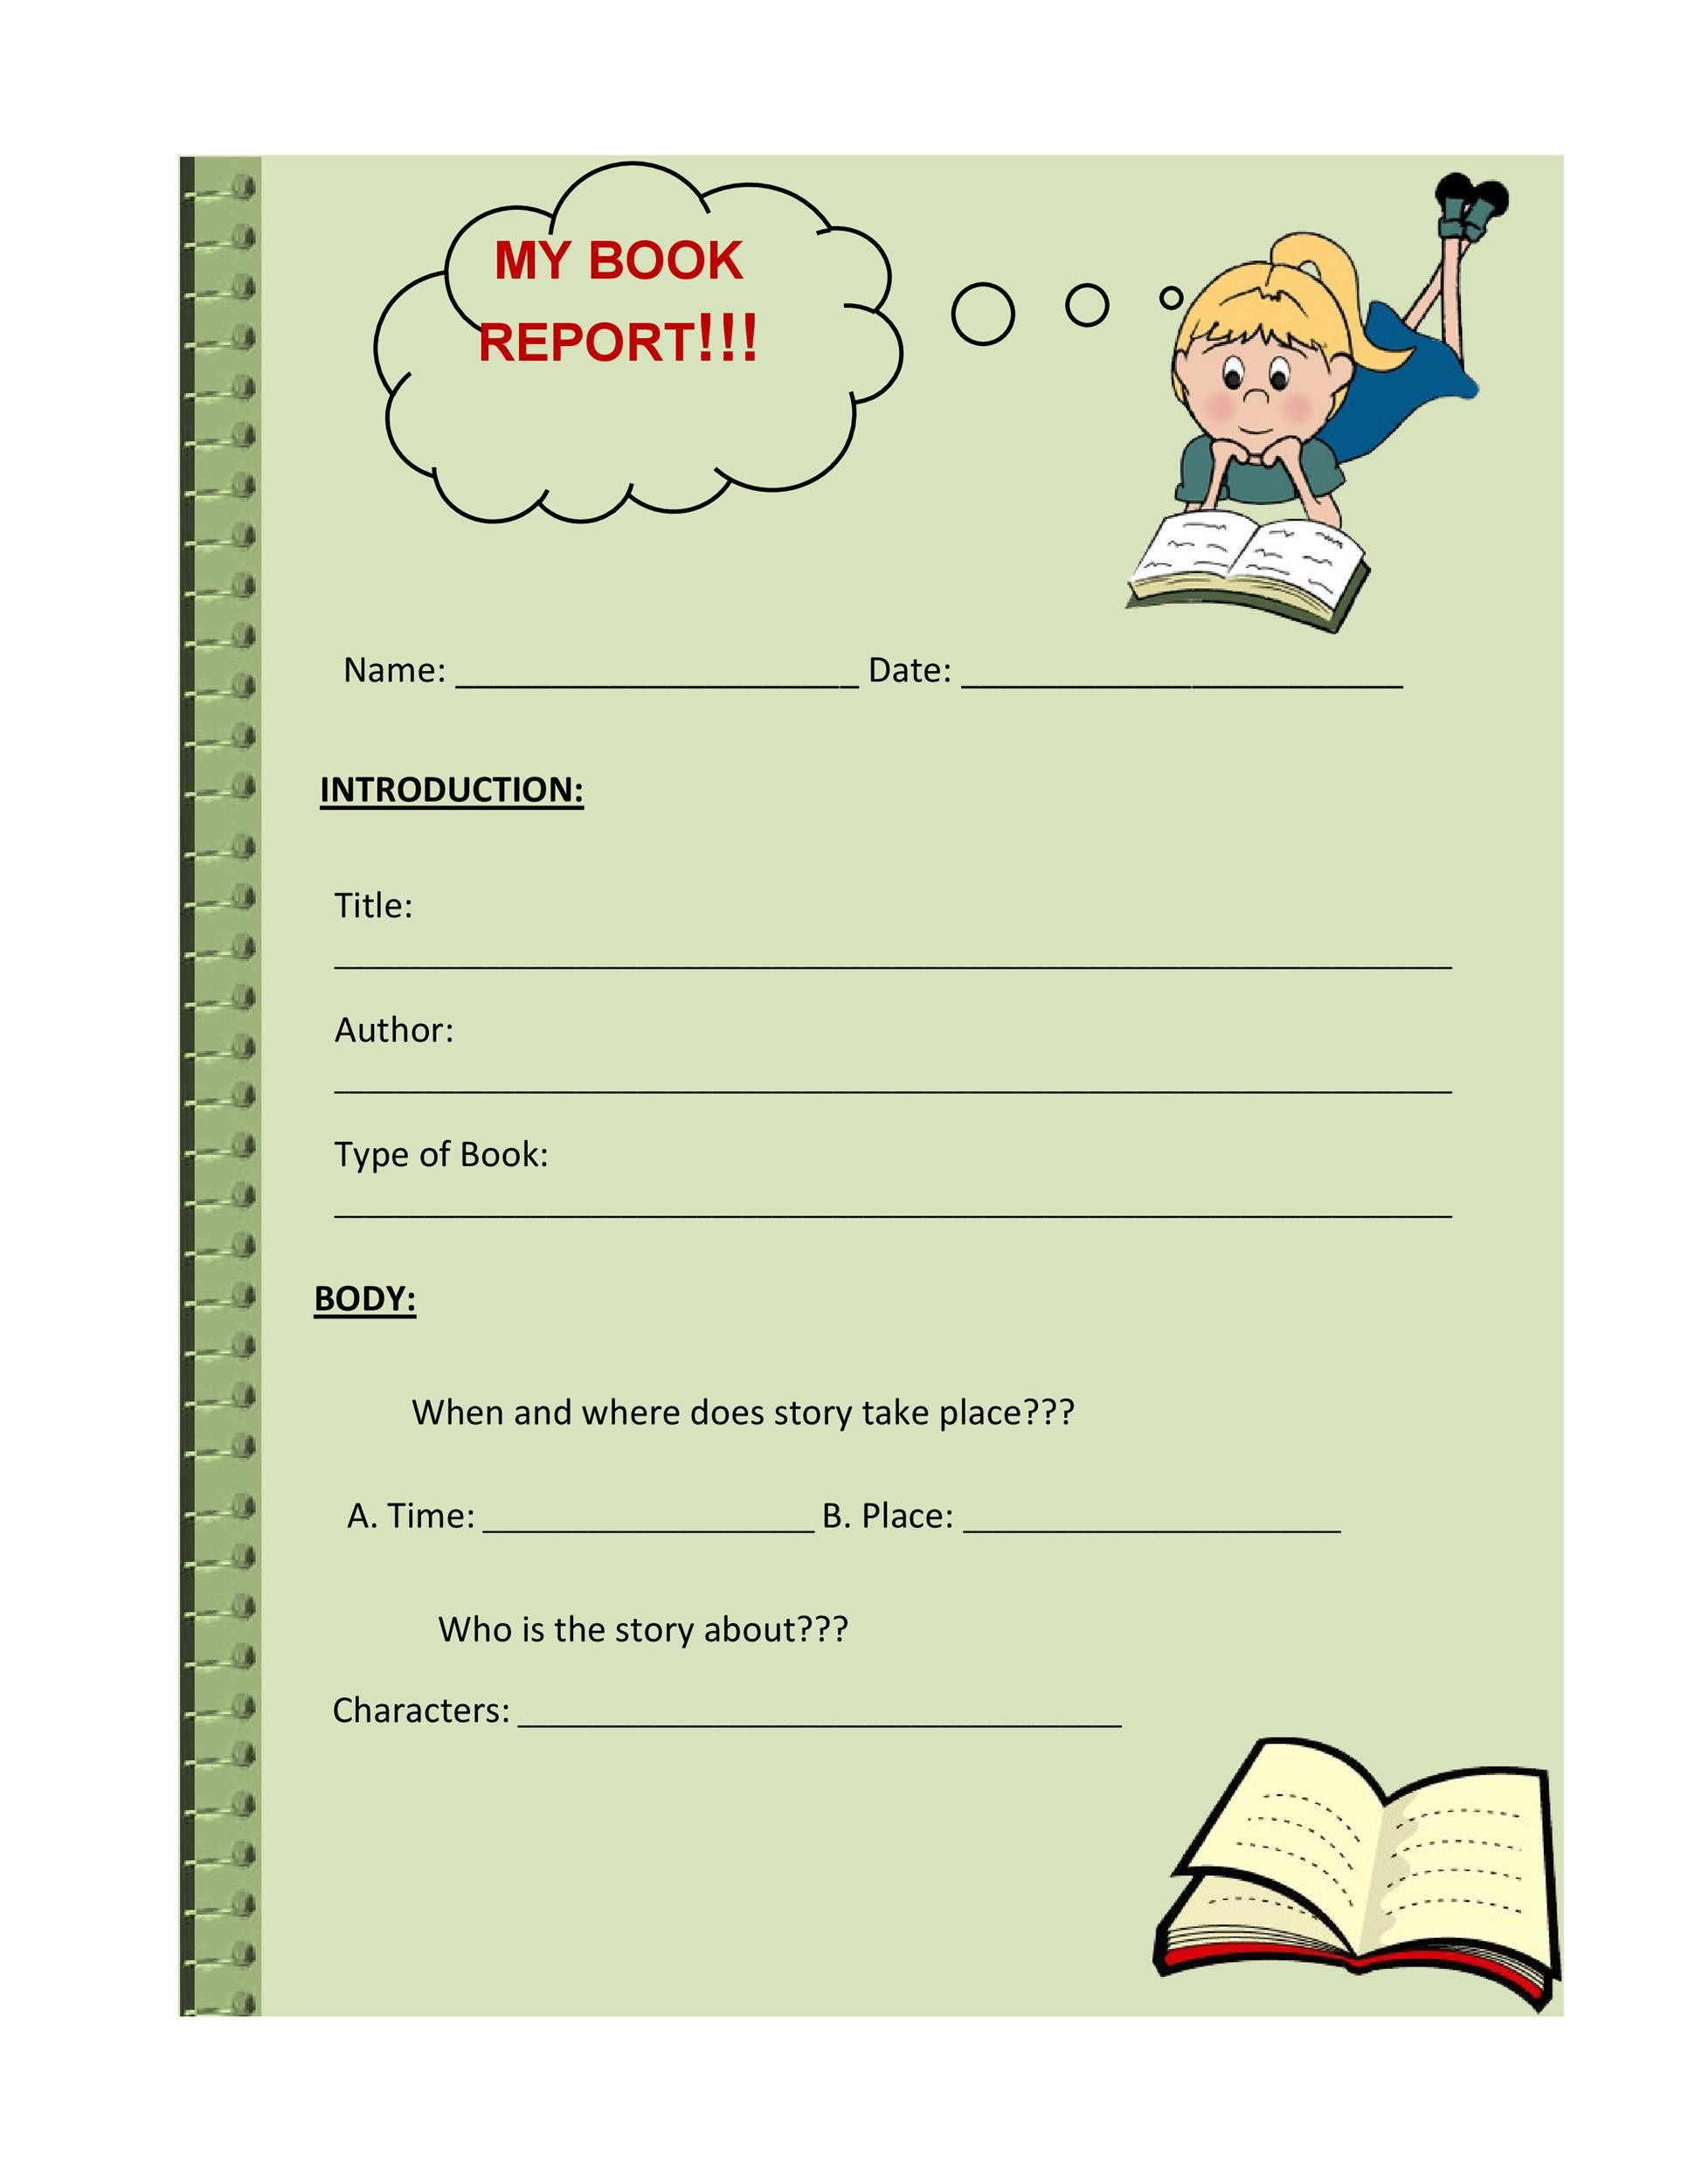 second grade book report questions Results 1 - 20 of 19348  second grade book report template | book report form grades 3+  report - i  love that this asks kids to come up with the questions.